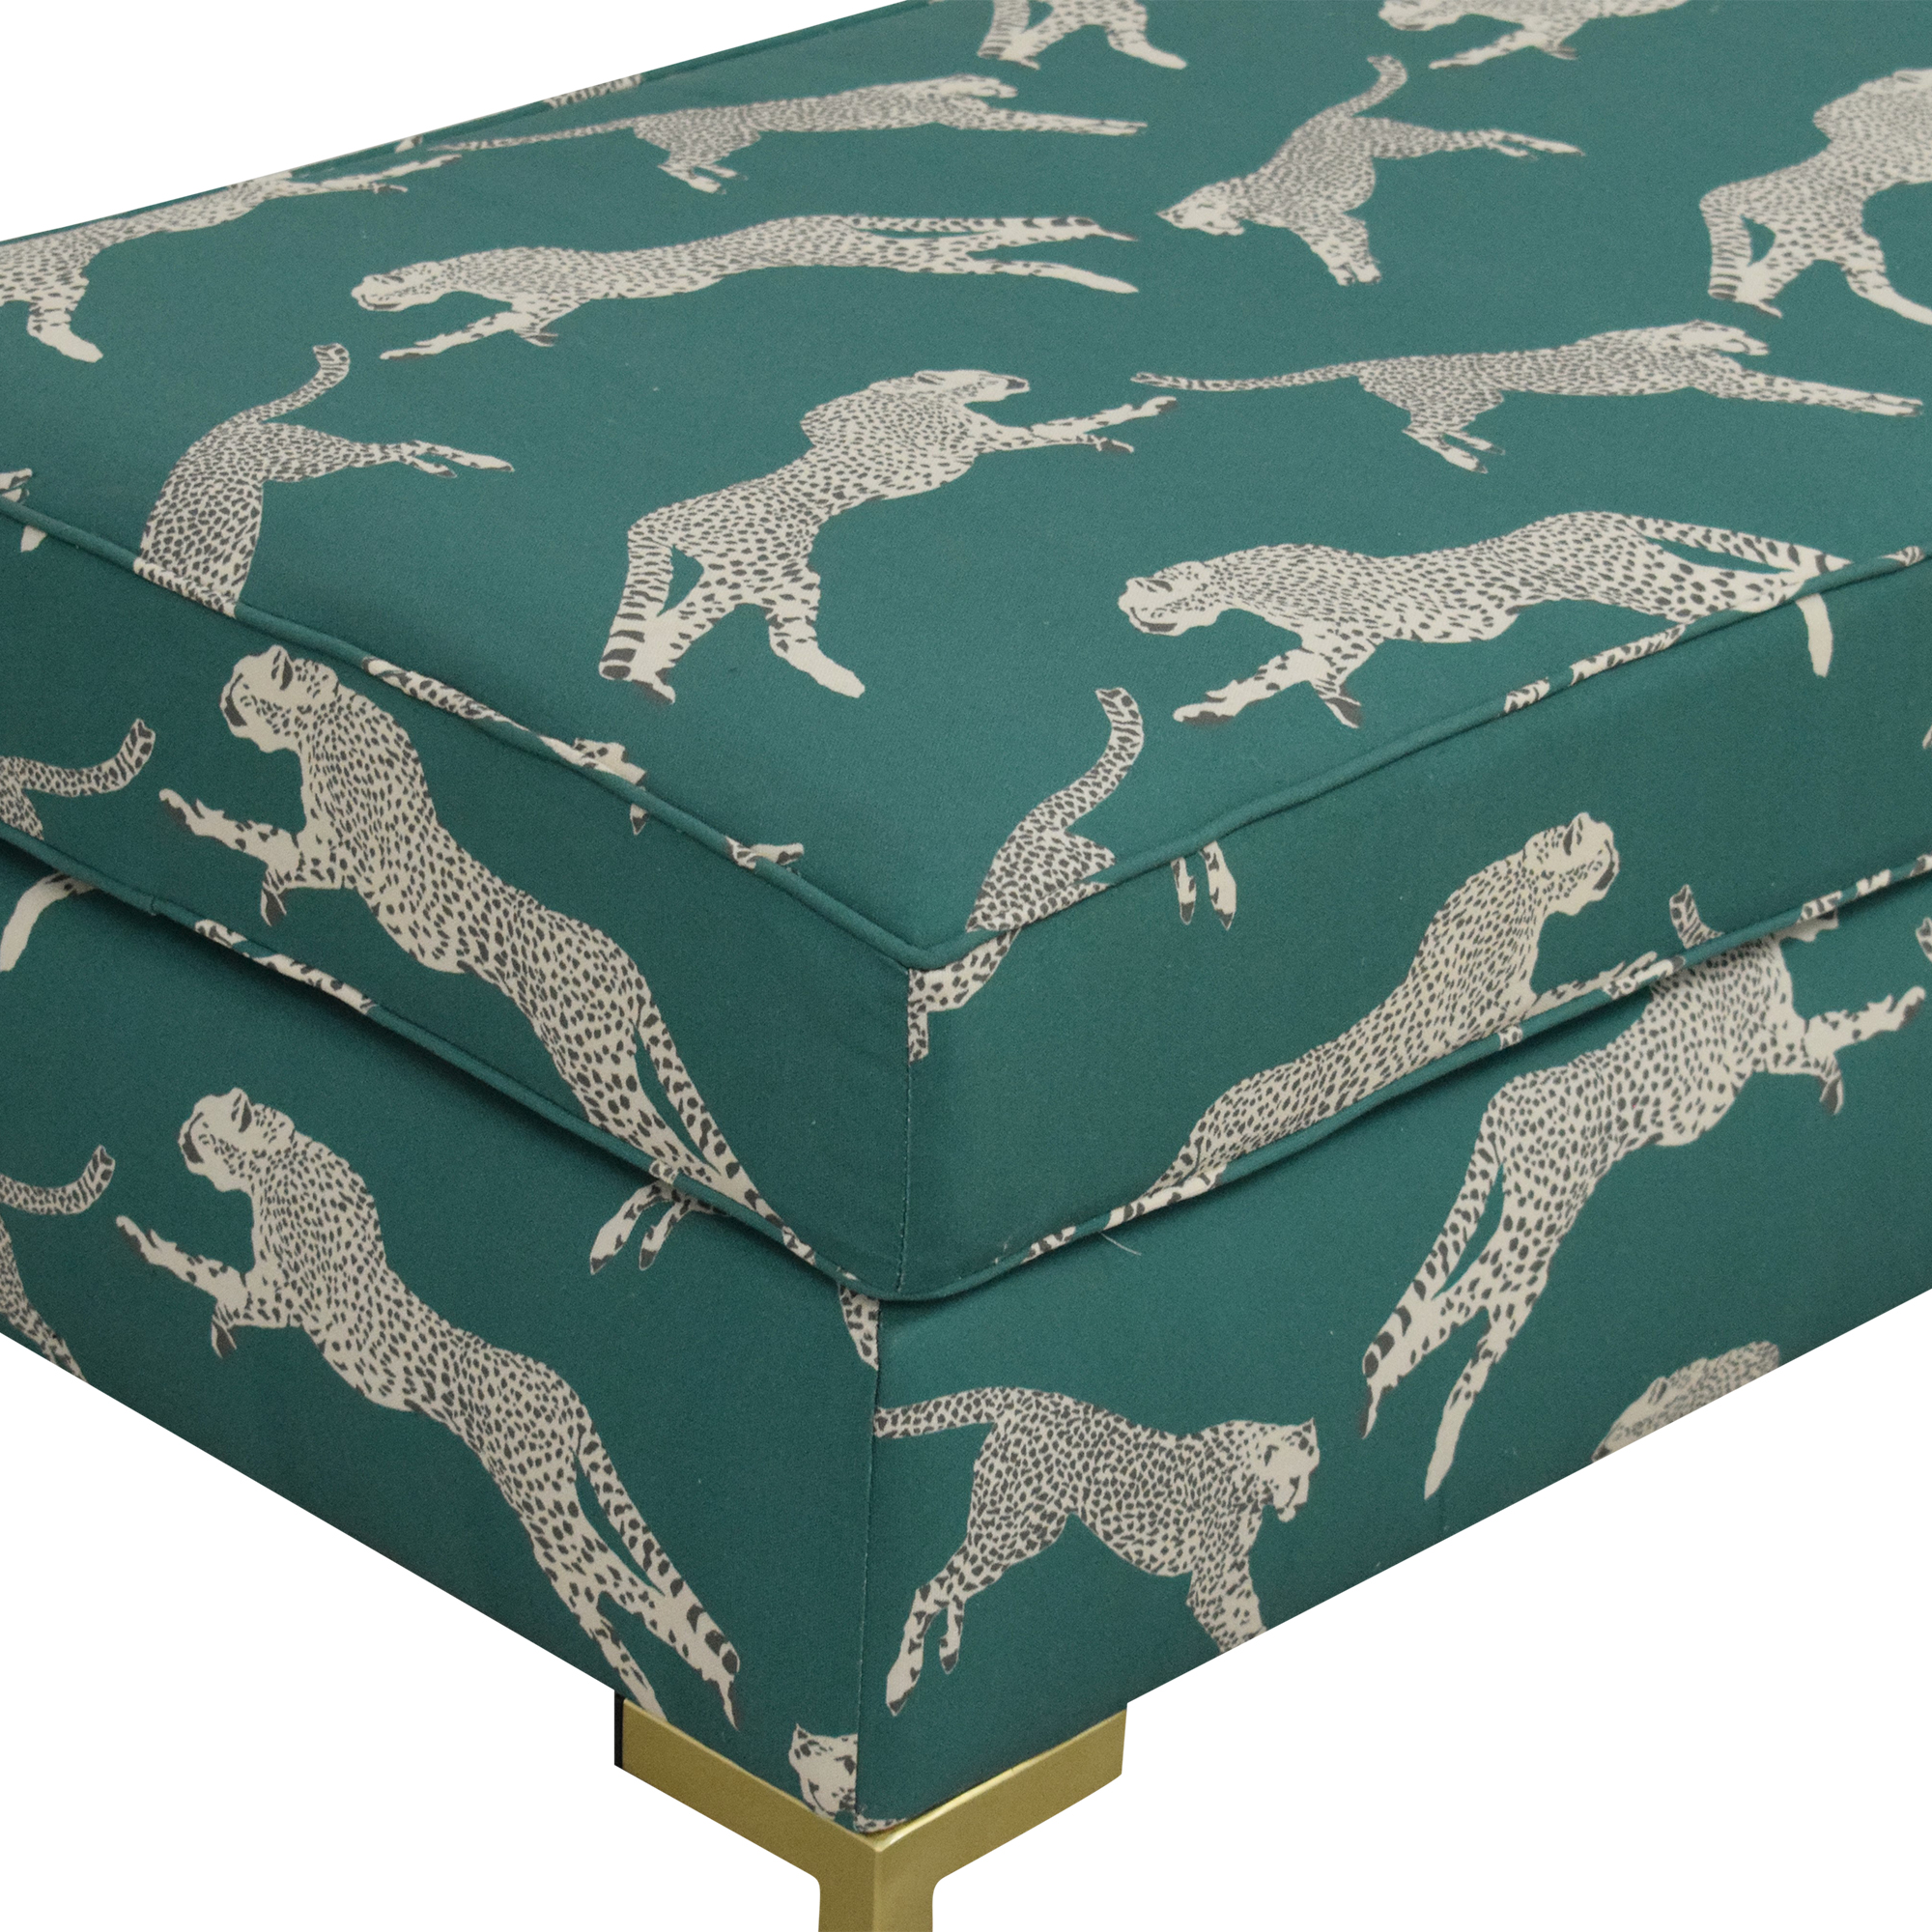 shop The Inside Polo Green Cheetah Modern Bench The Inside Benches